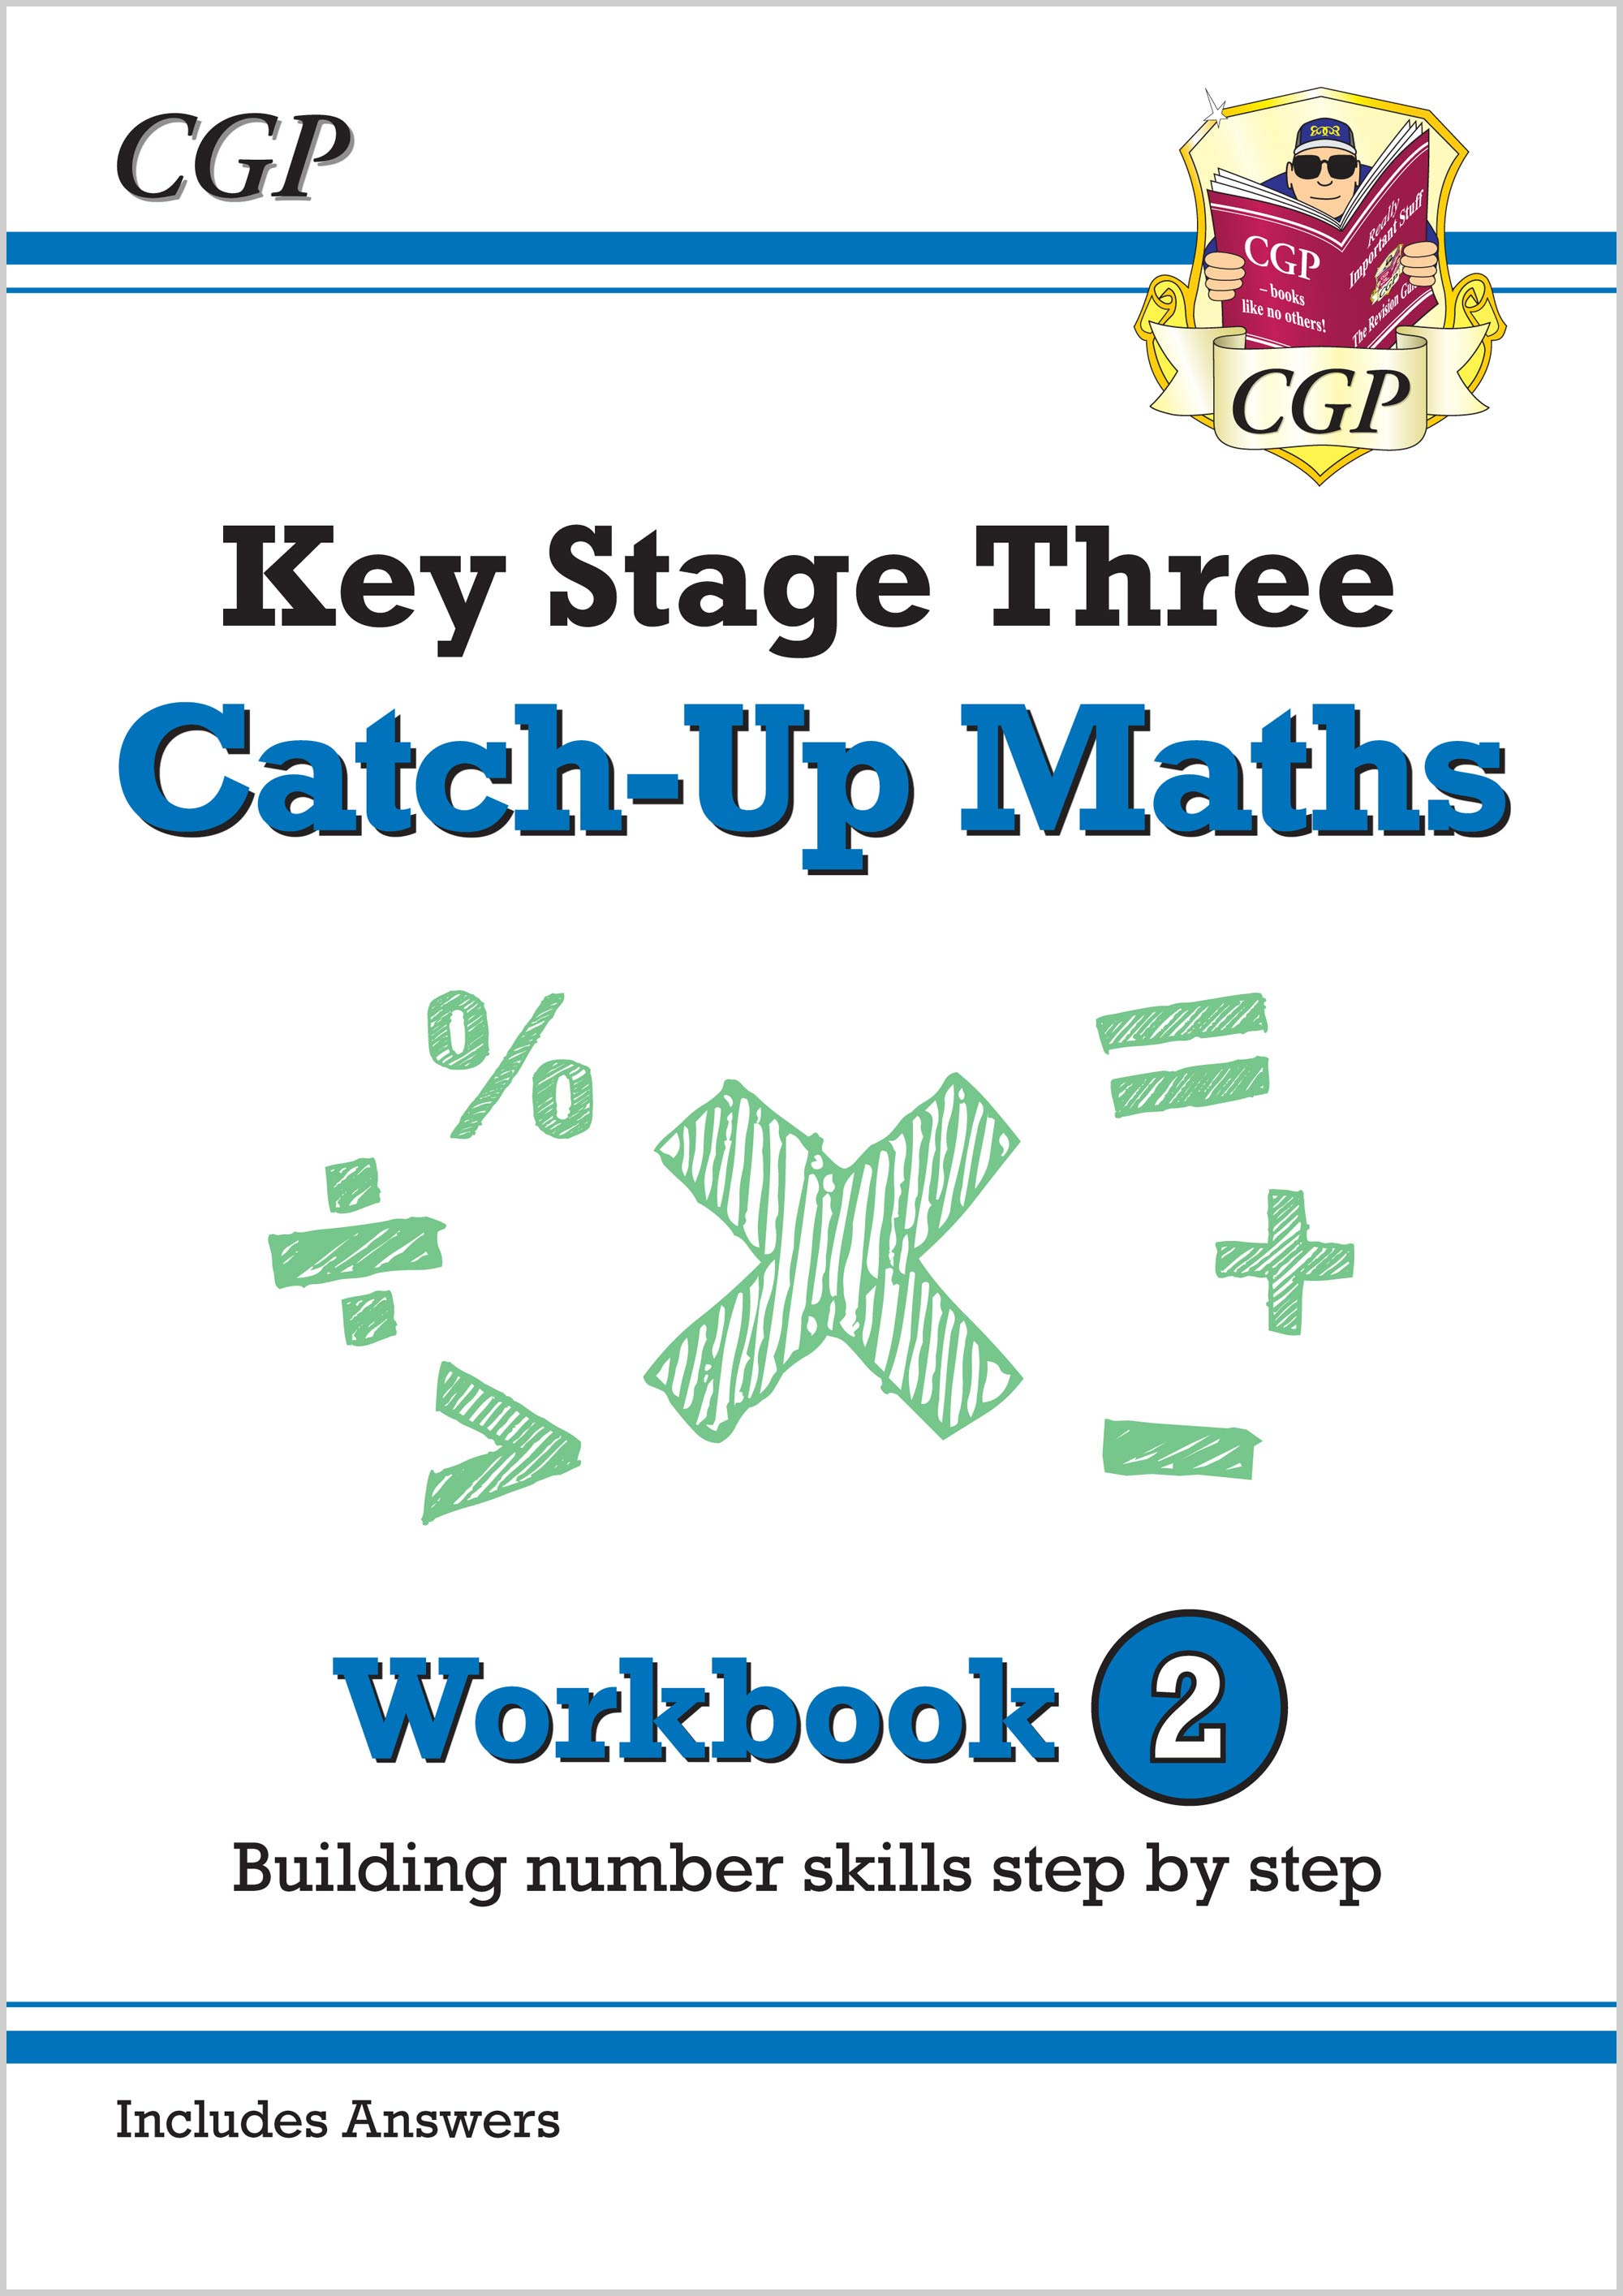 MBNW231 - New KS3 Maths Catch-Up Workbook 2 (with Answers)